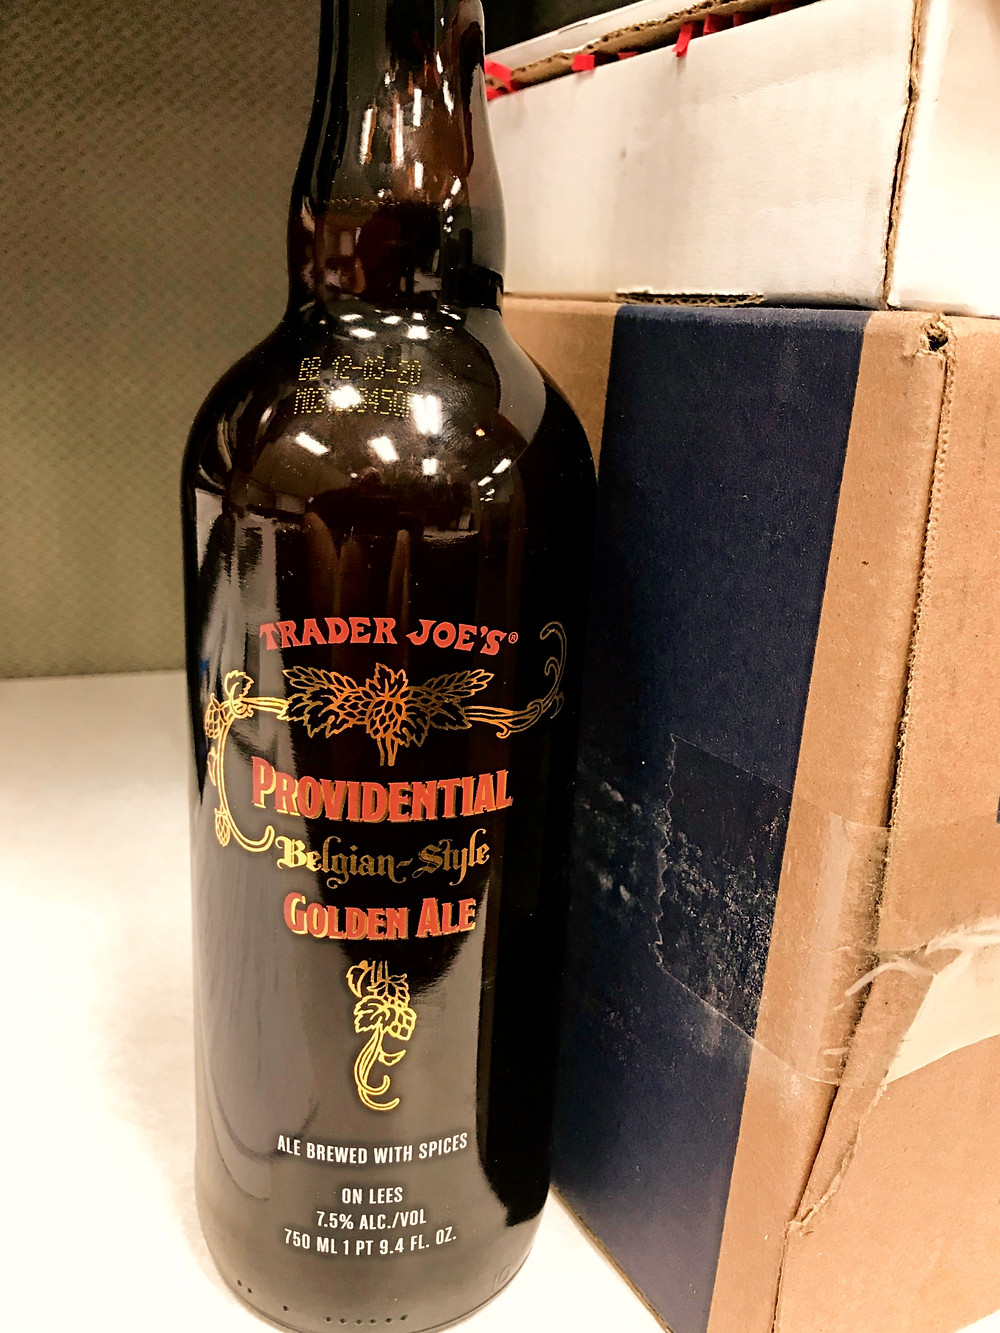 Trader Joe's Providential Golden Ale Beer Review